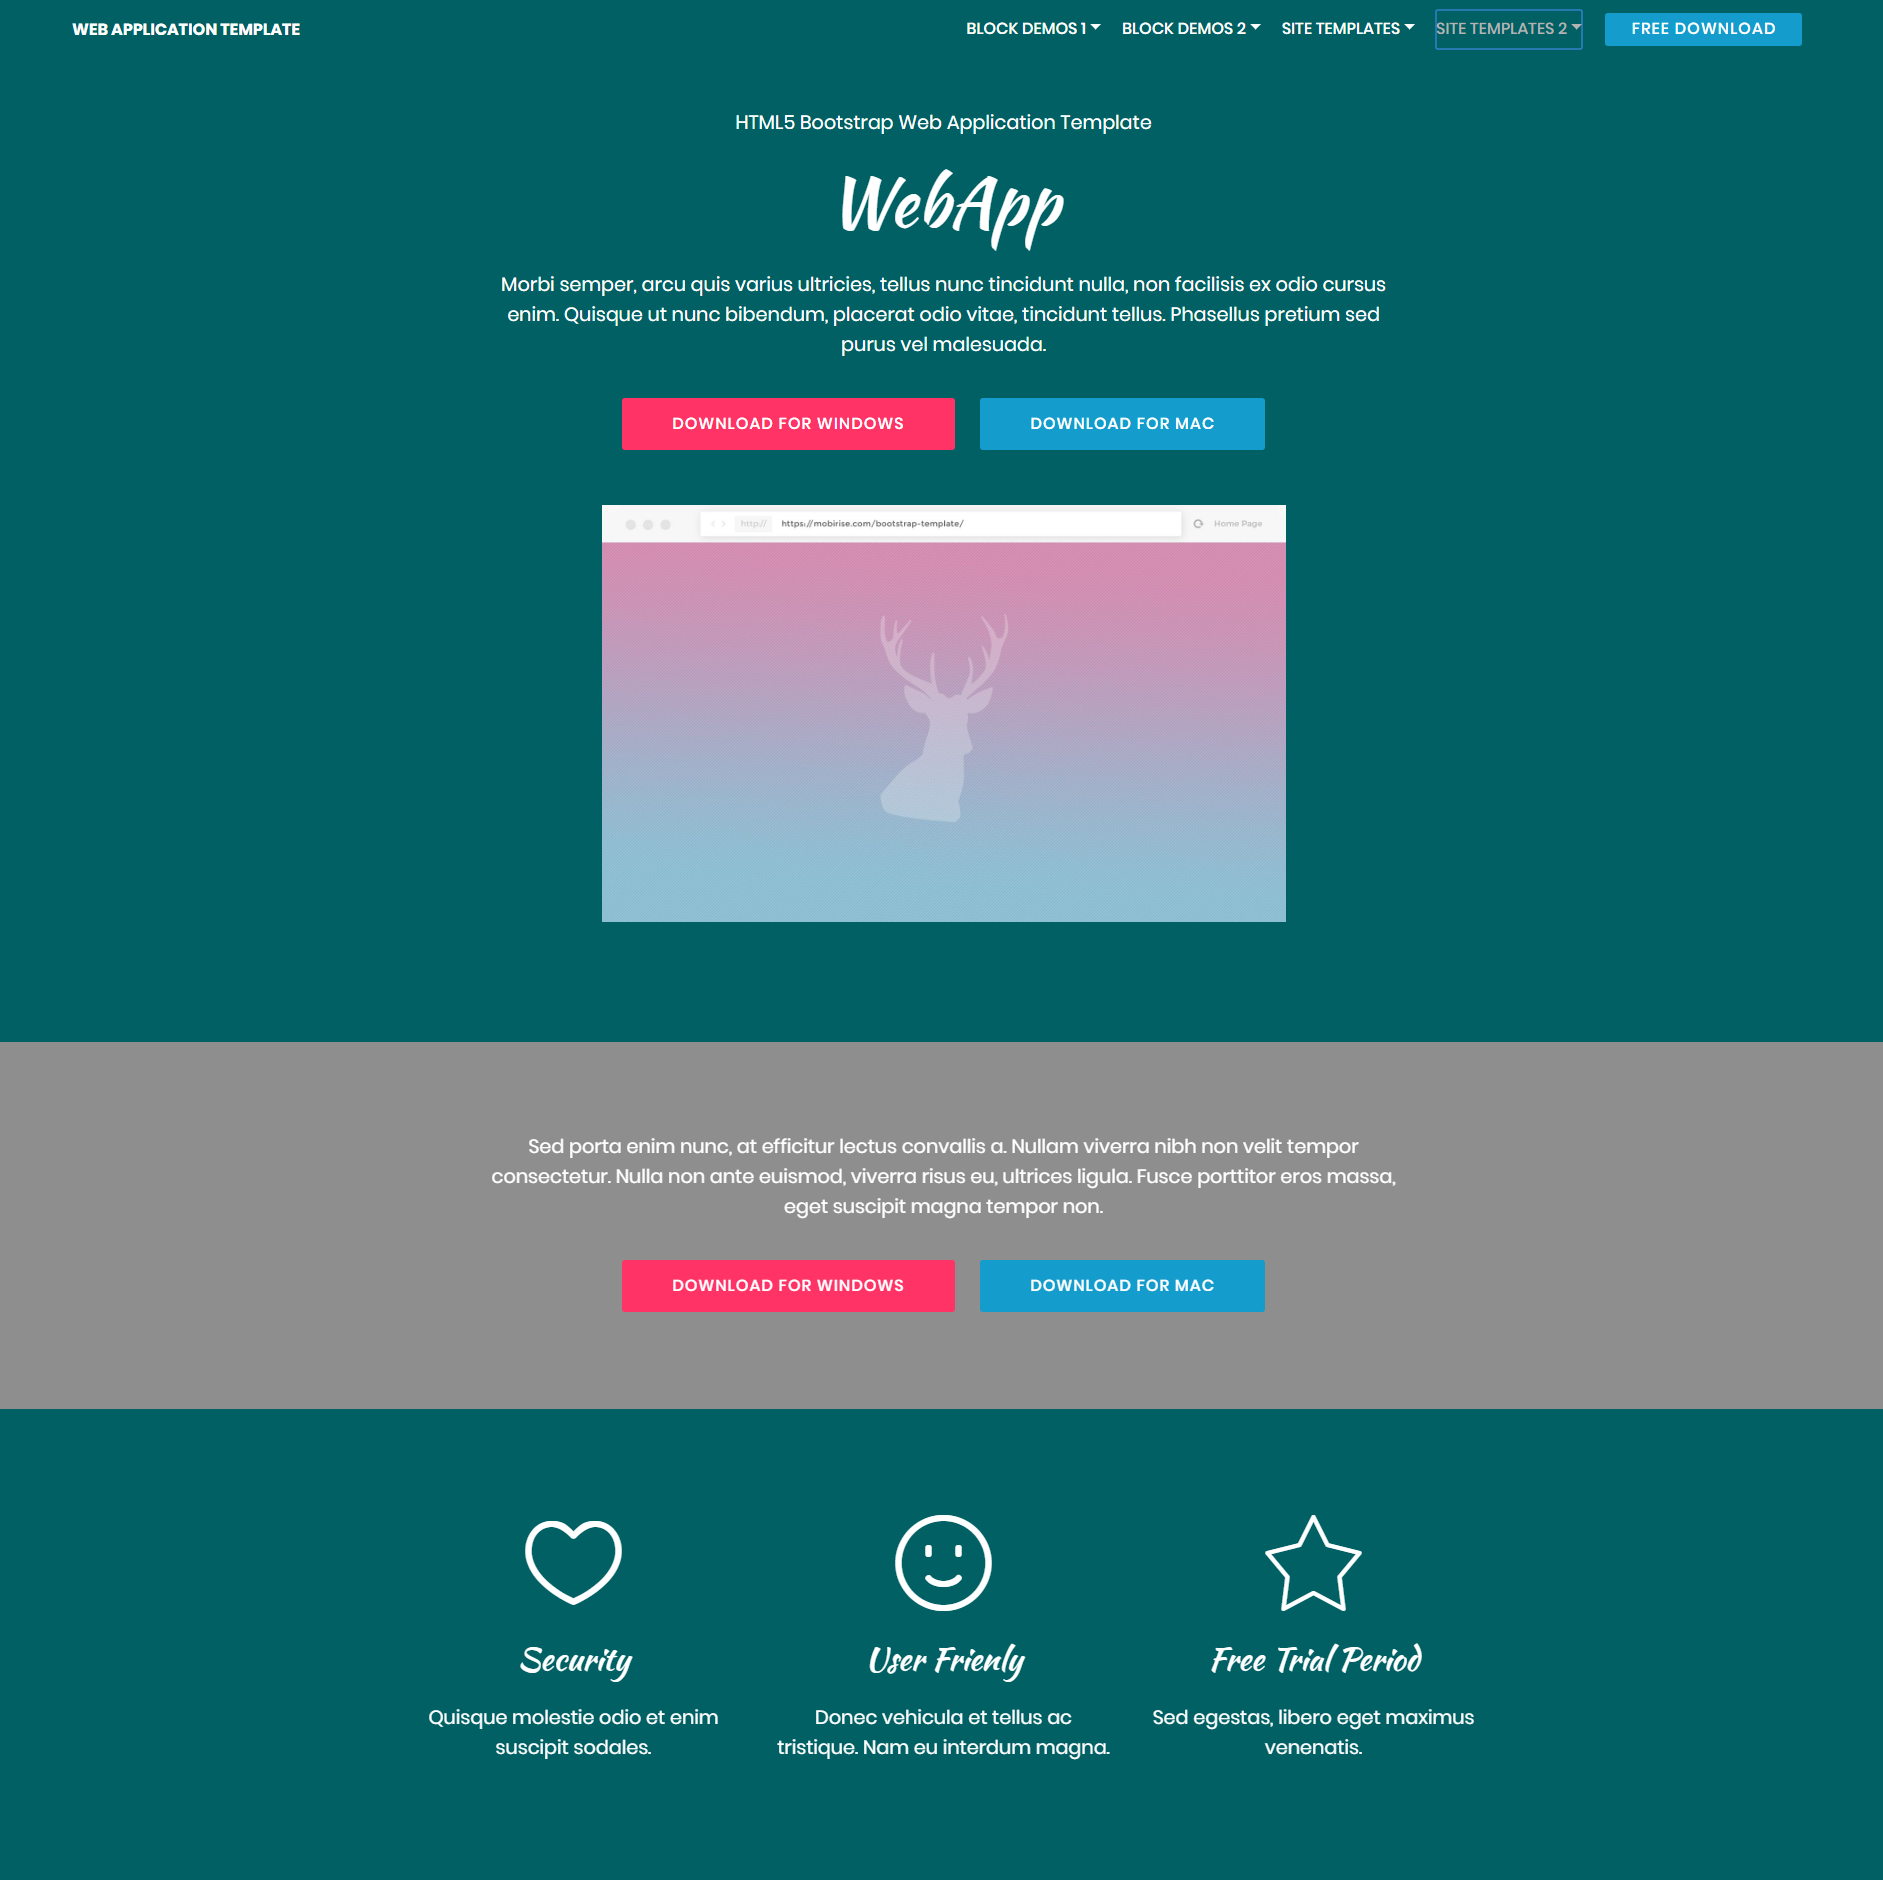 HTML5 Bootstrap Web Application Templates